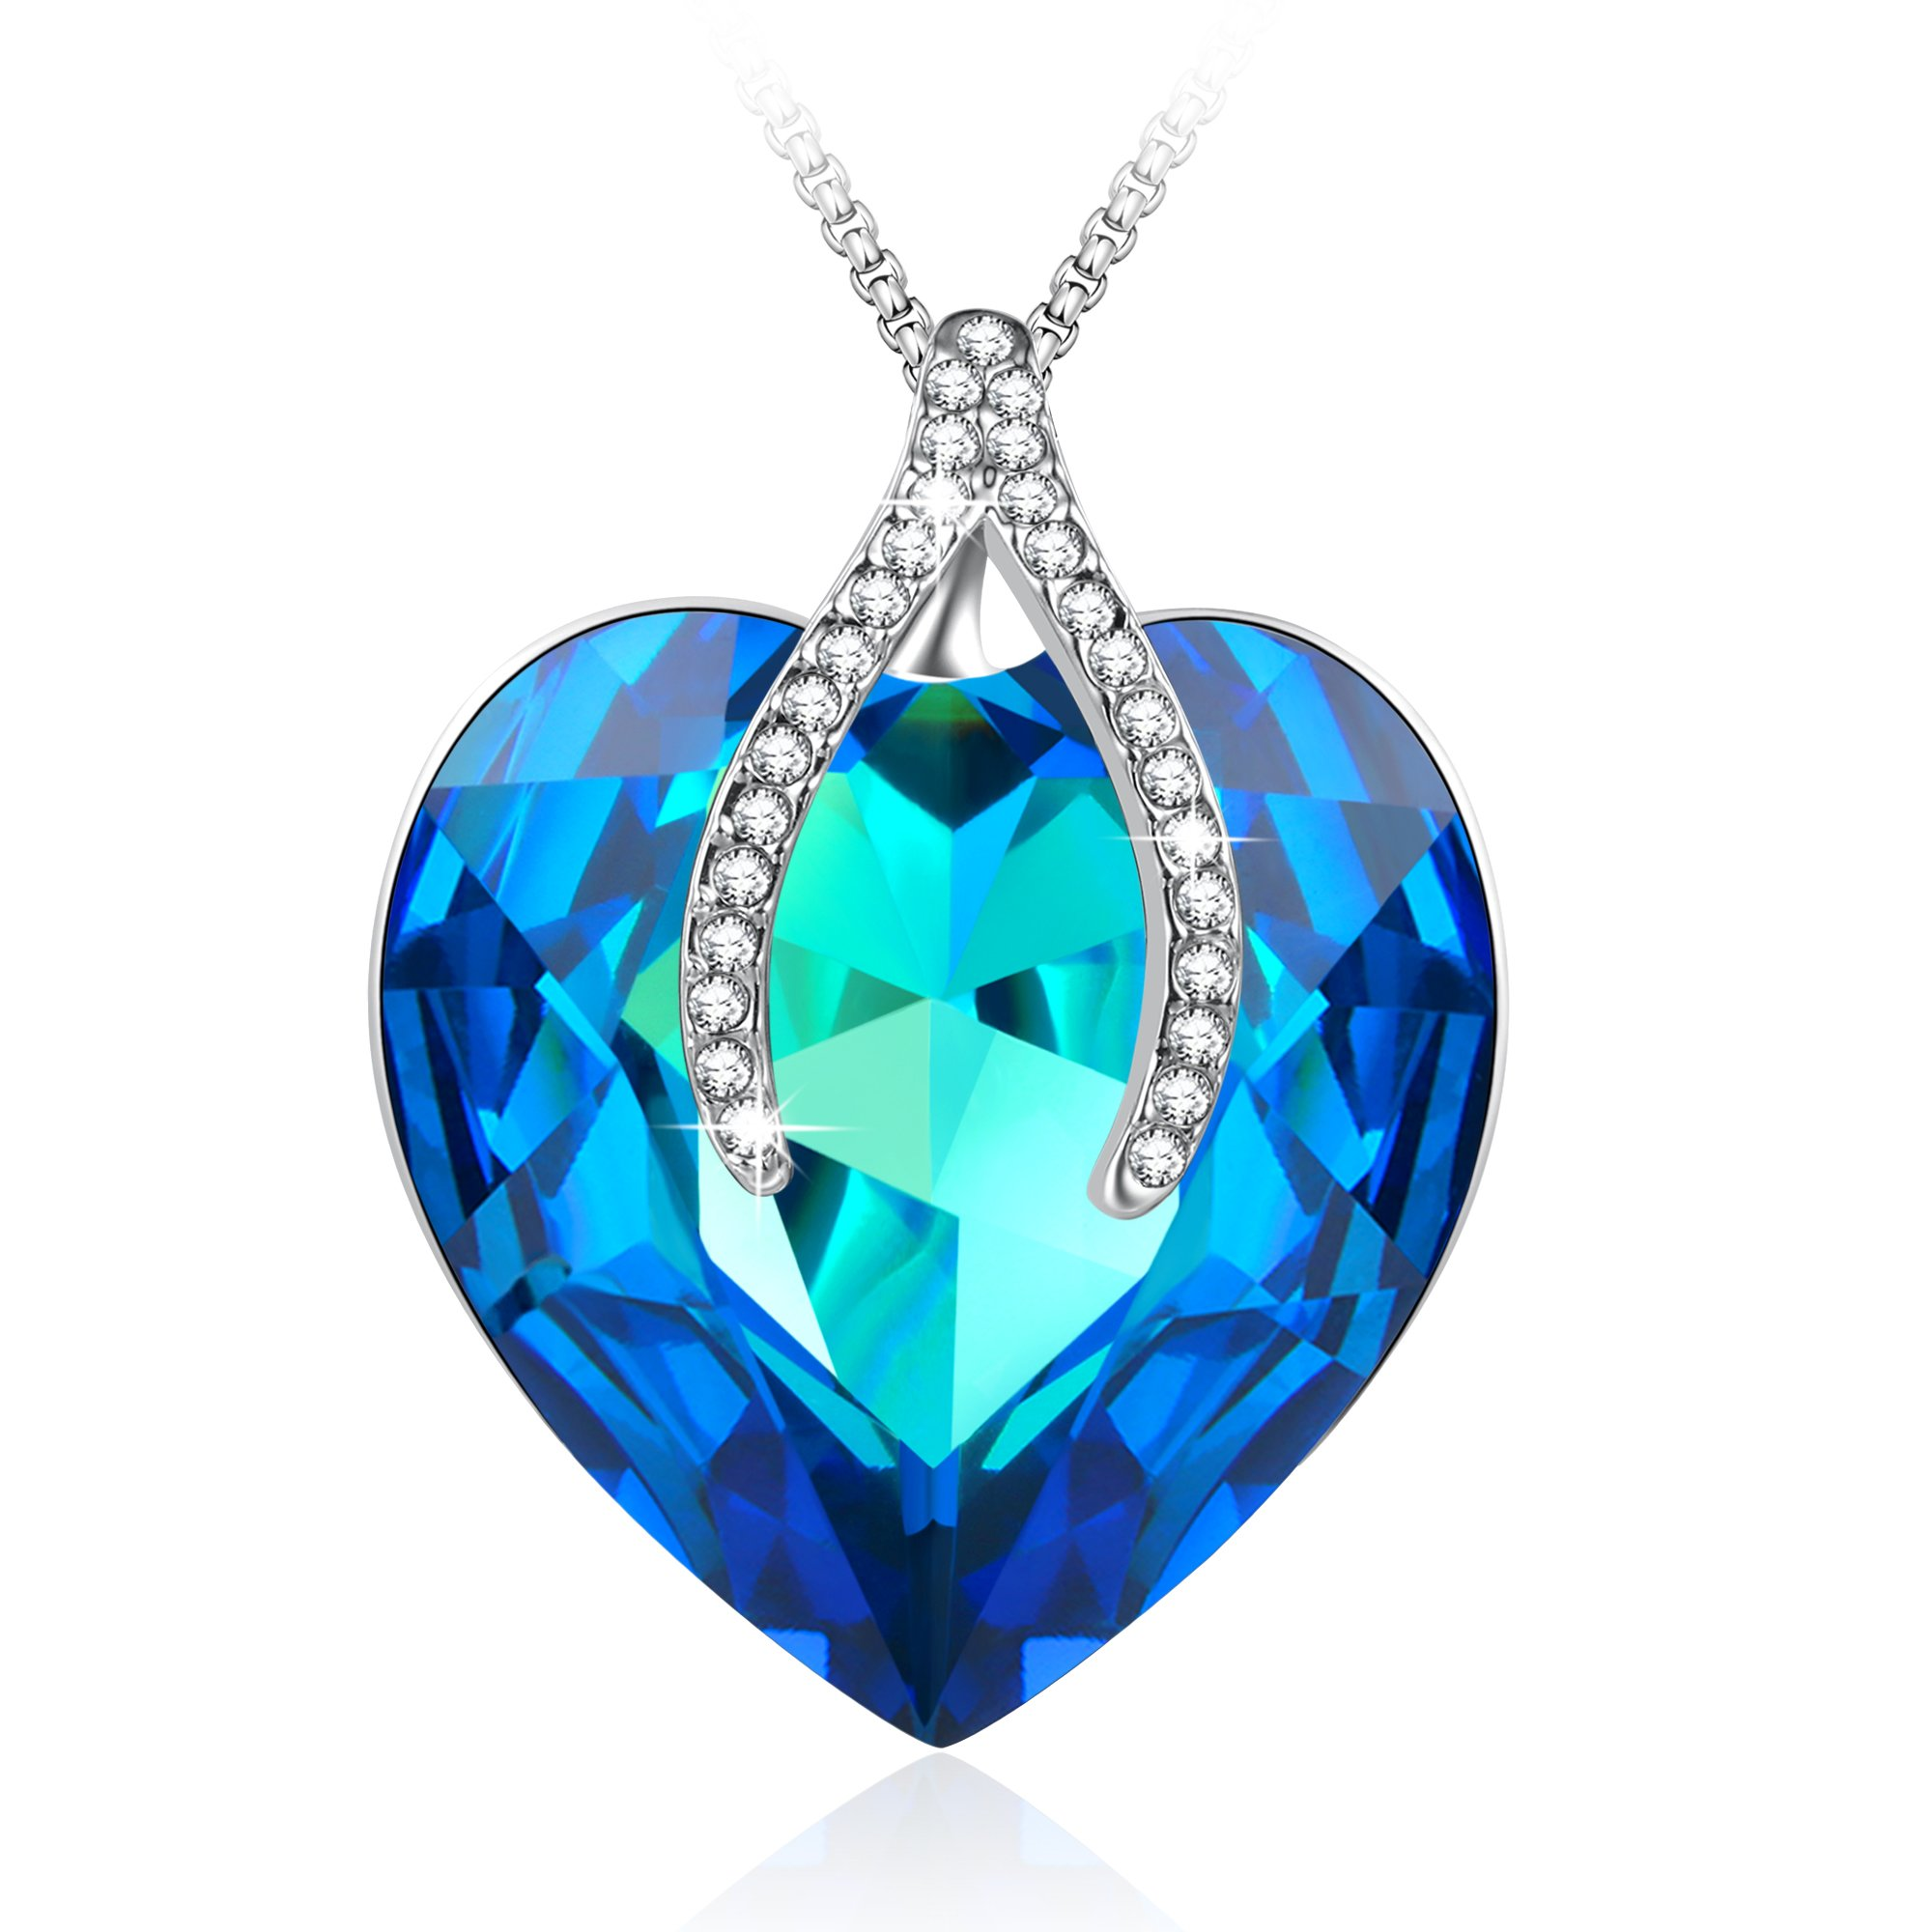 Angelady Wishbone Pendant Necklace Sapphire Jewelry Gifts for Her Best Wishes,Blue Crystal from Swarovski